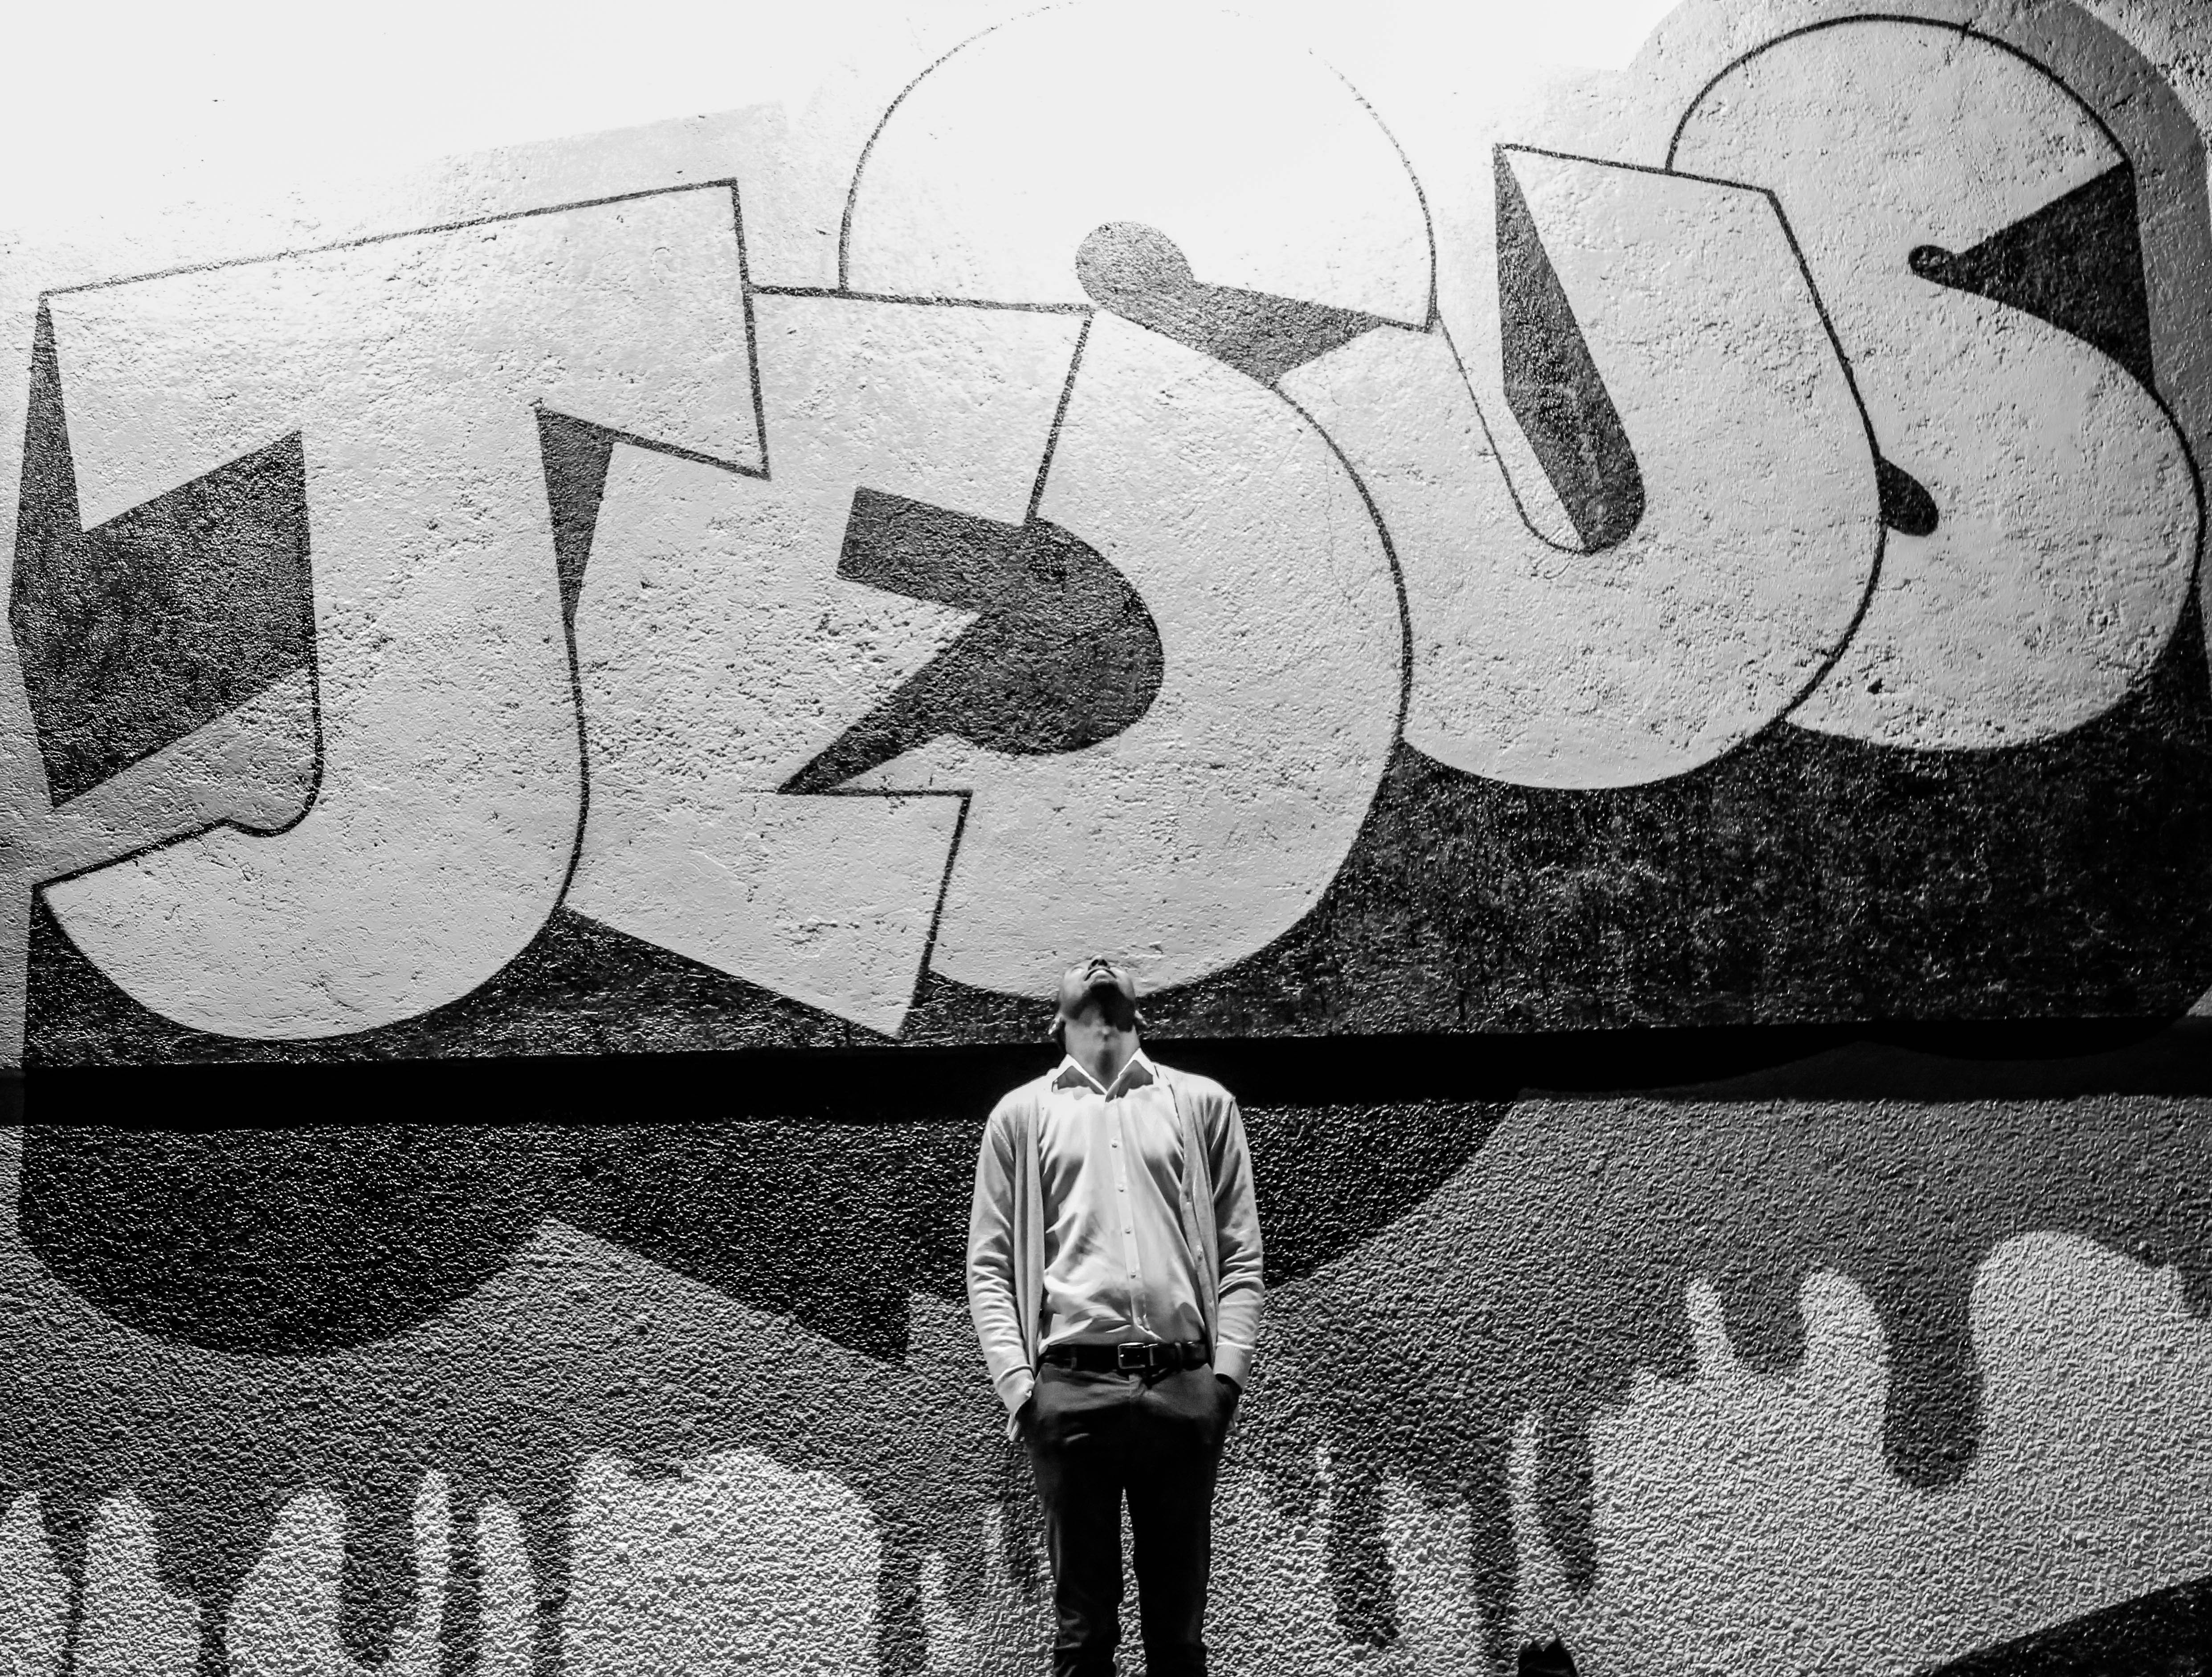 grayscale photography of a man standing in front of a Jesus graffiti